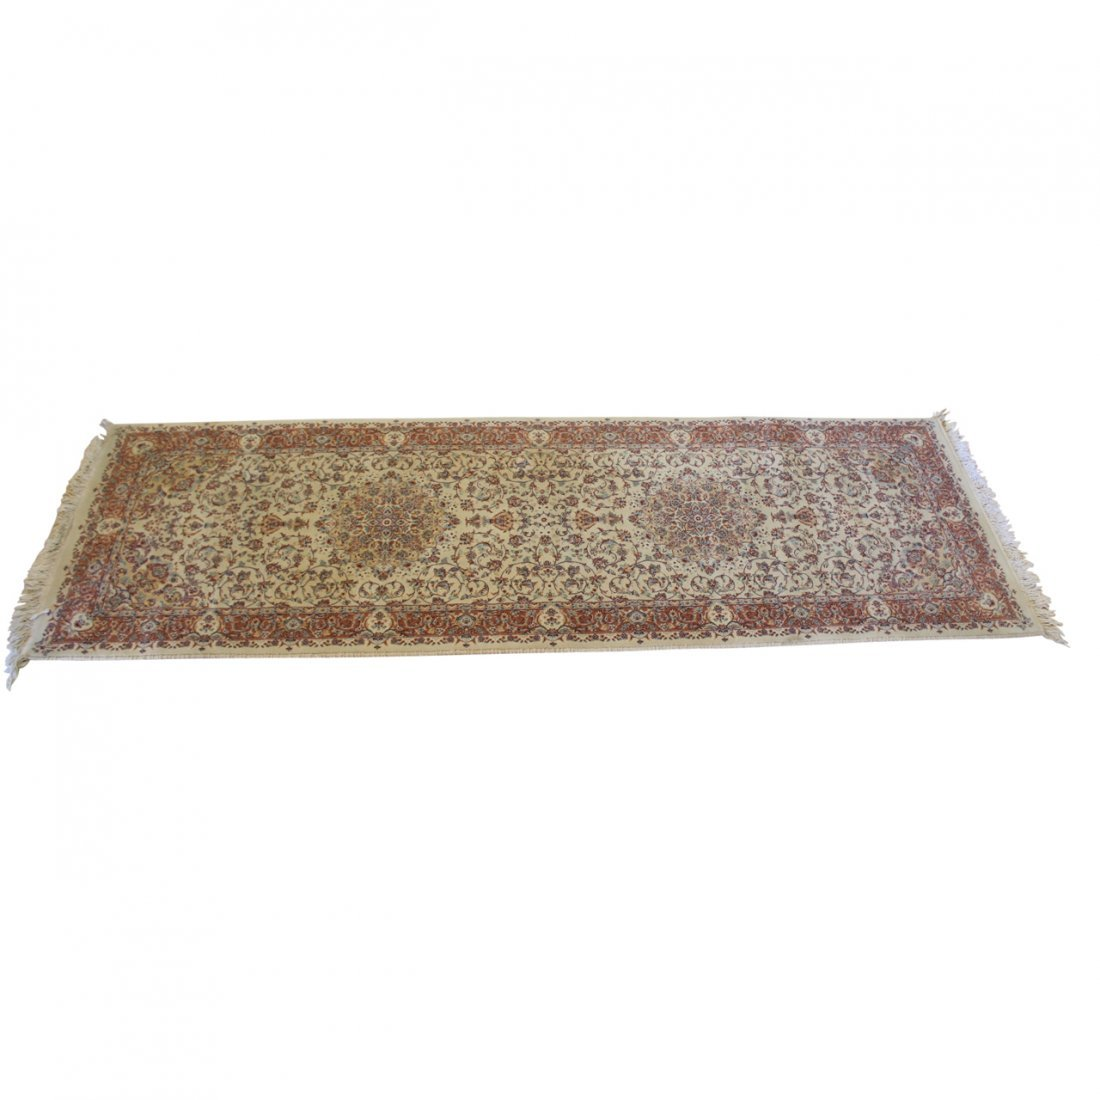 Vintage Tabriz Style Machined Runner